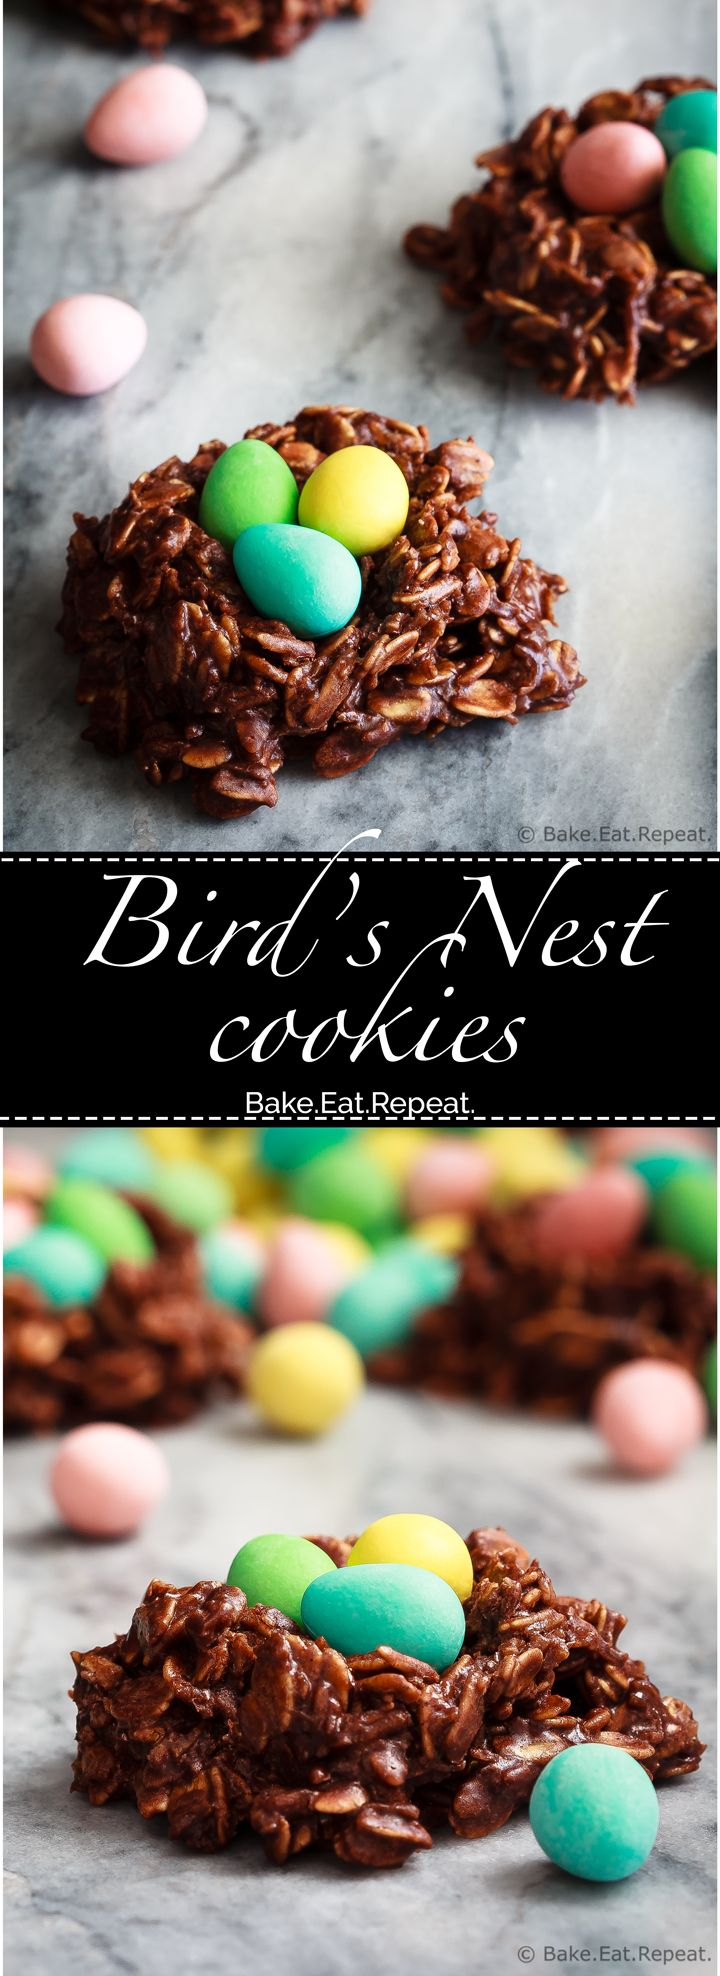 These no bake bird's nest cookies - also known as haystack cookies - are quick and easy to make and the kids will love them!